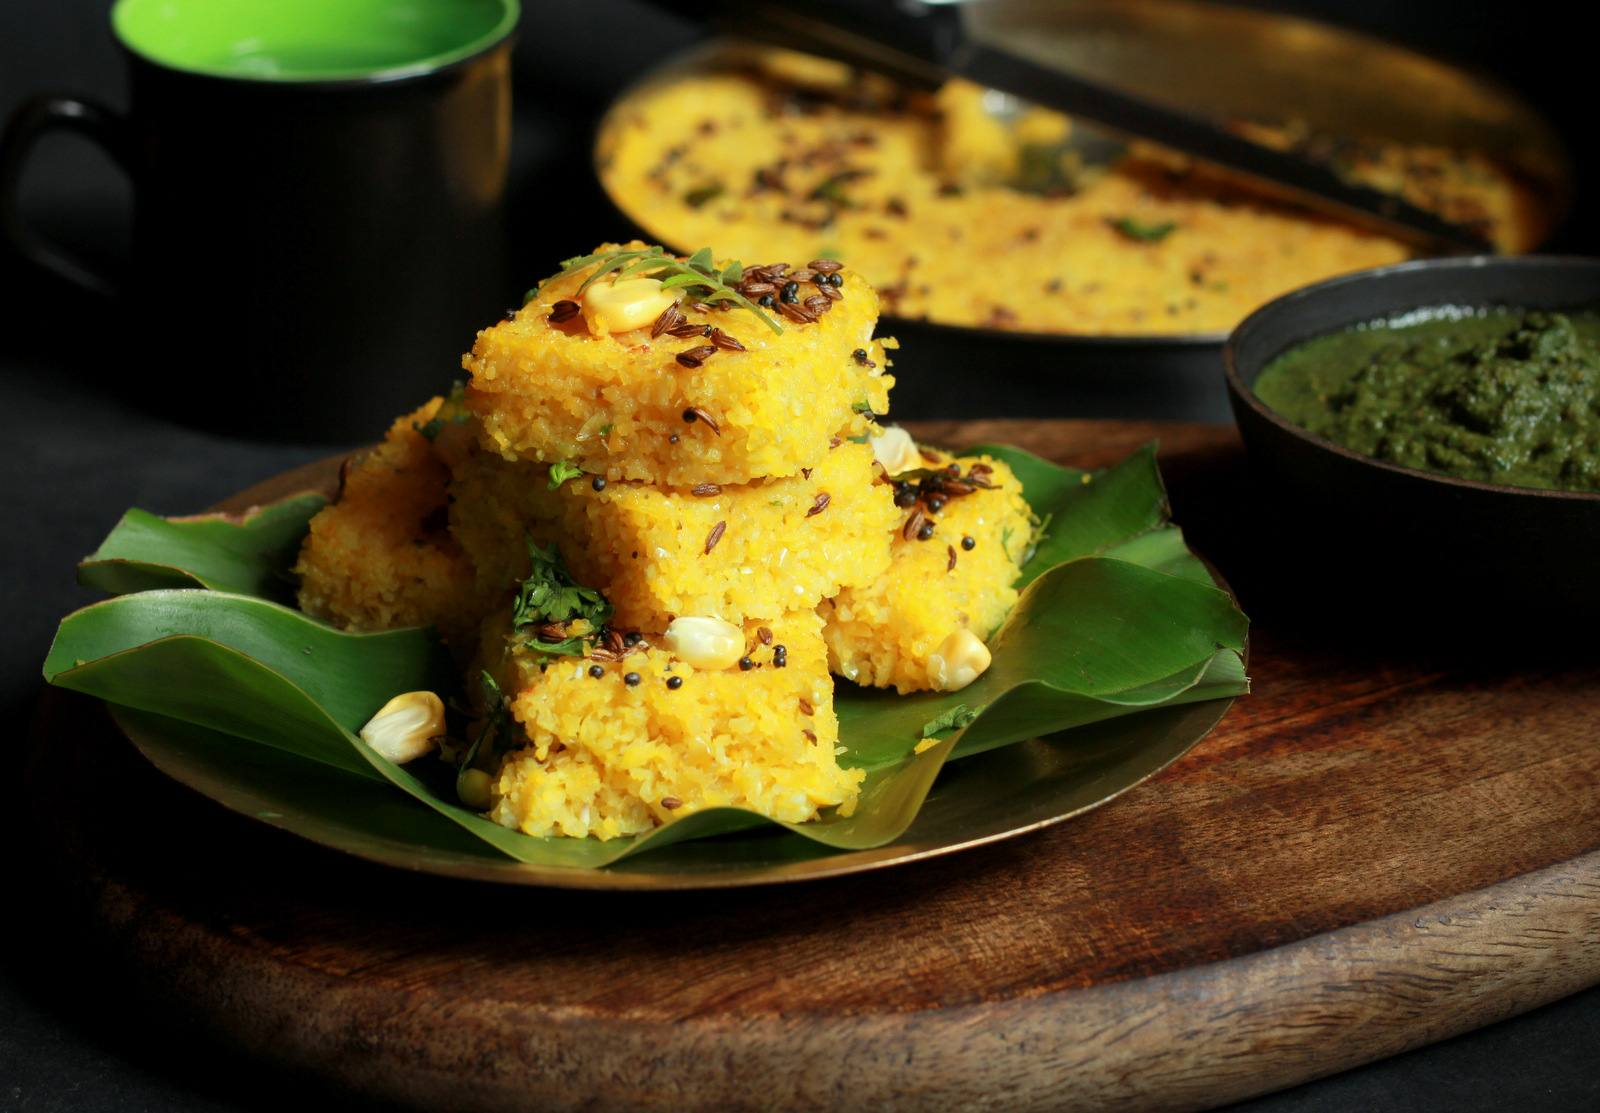 Makai dhokla recipe savoury steamed corn cake by archanas kitchen makai dhokla recipe savoury steamed corn cake forumfinder Choice Image